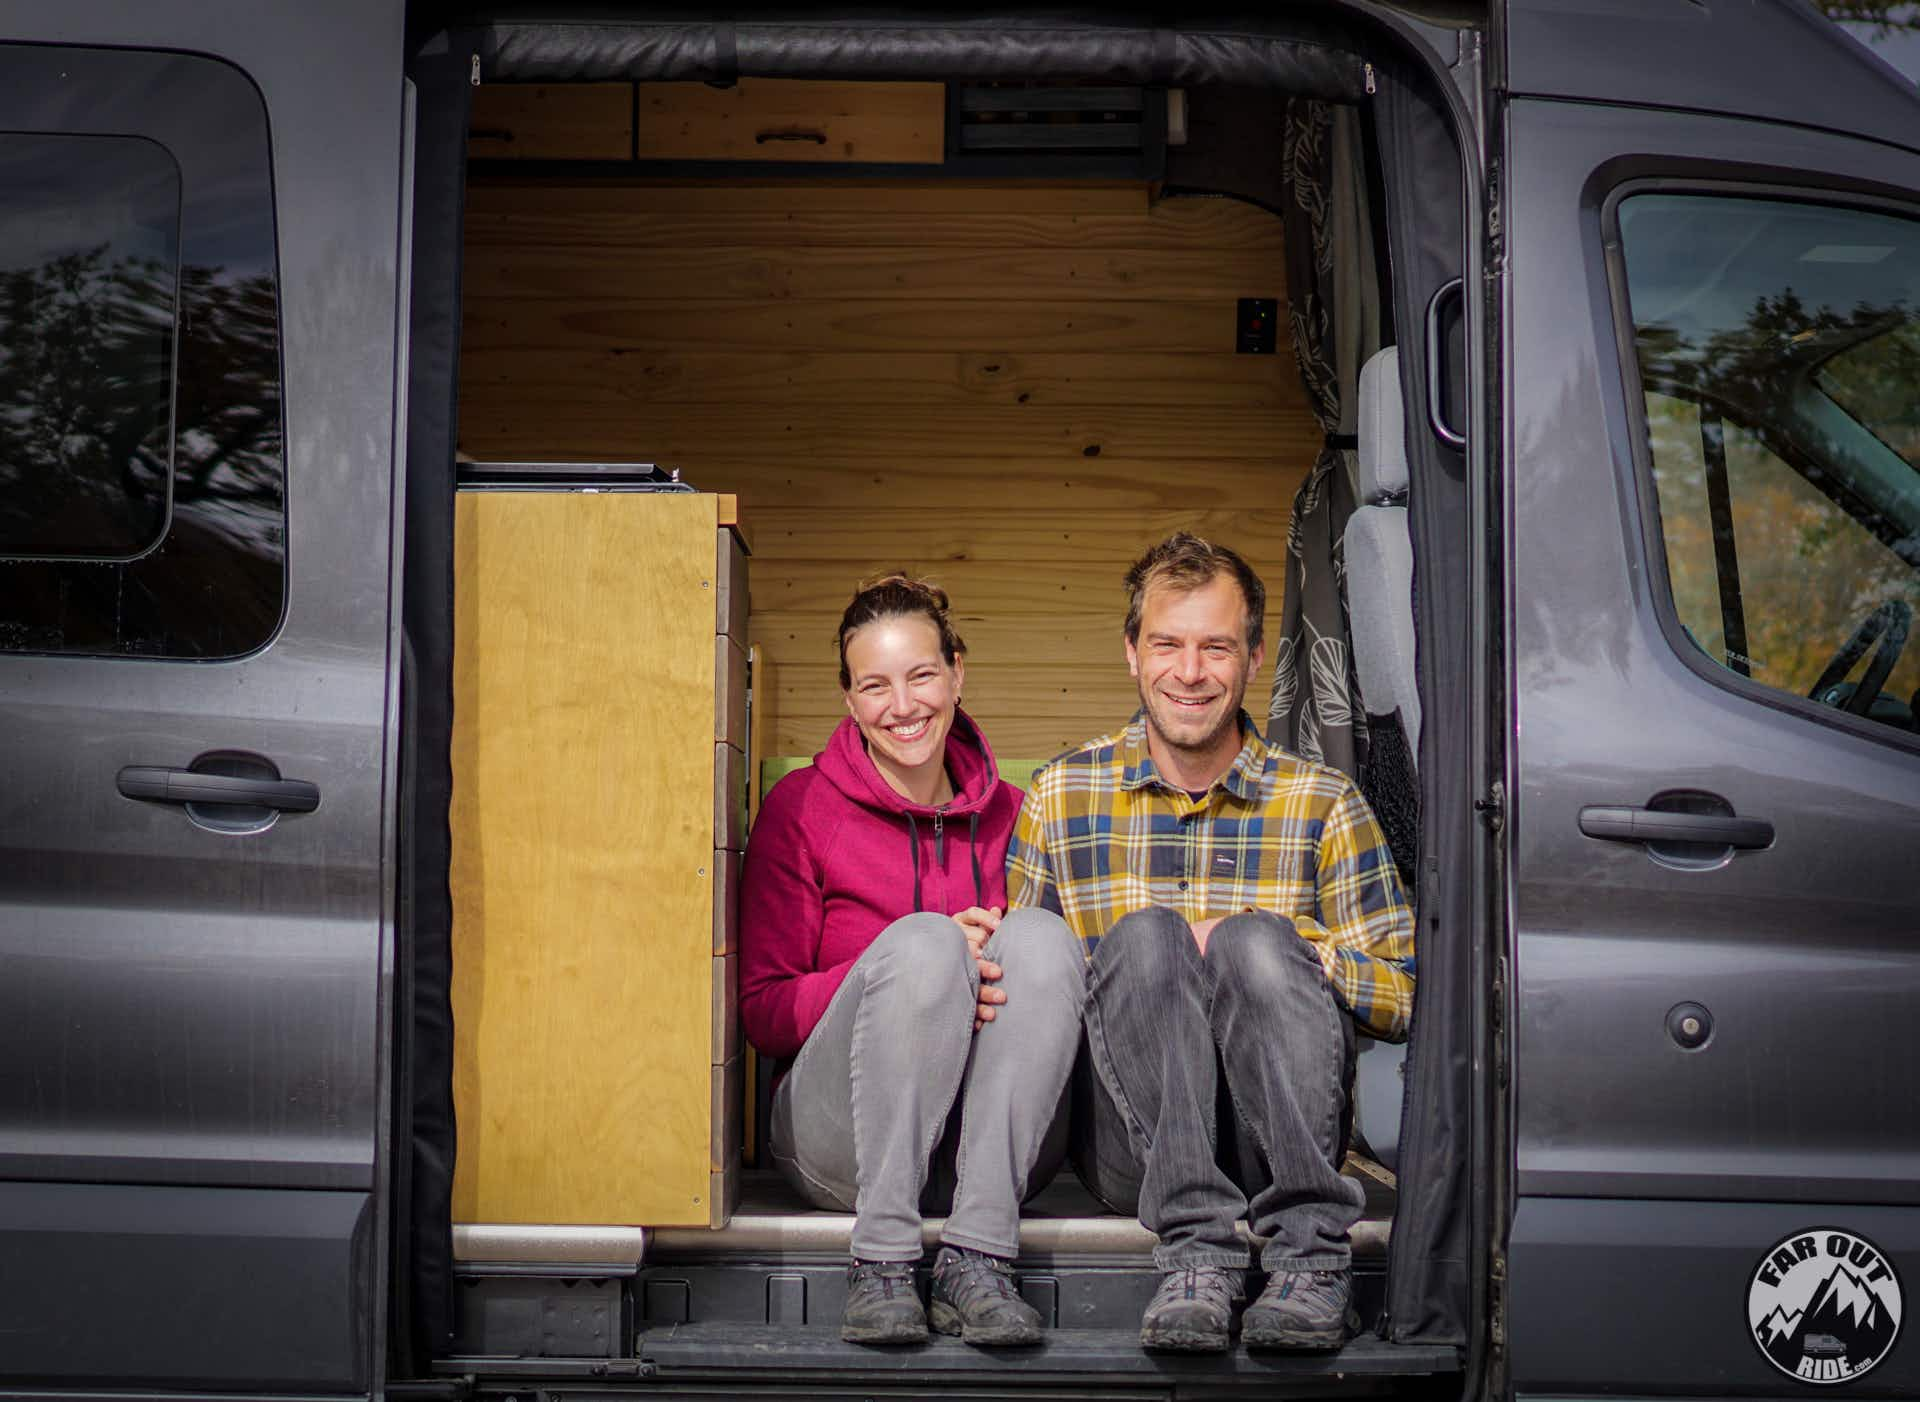 'A lifestyle with less expenses, less work, and more time': the benefits of vanlife